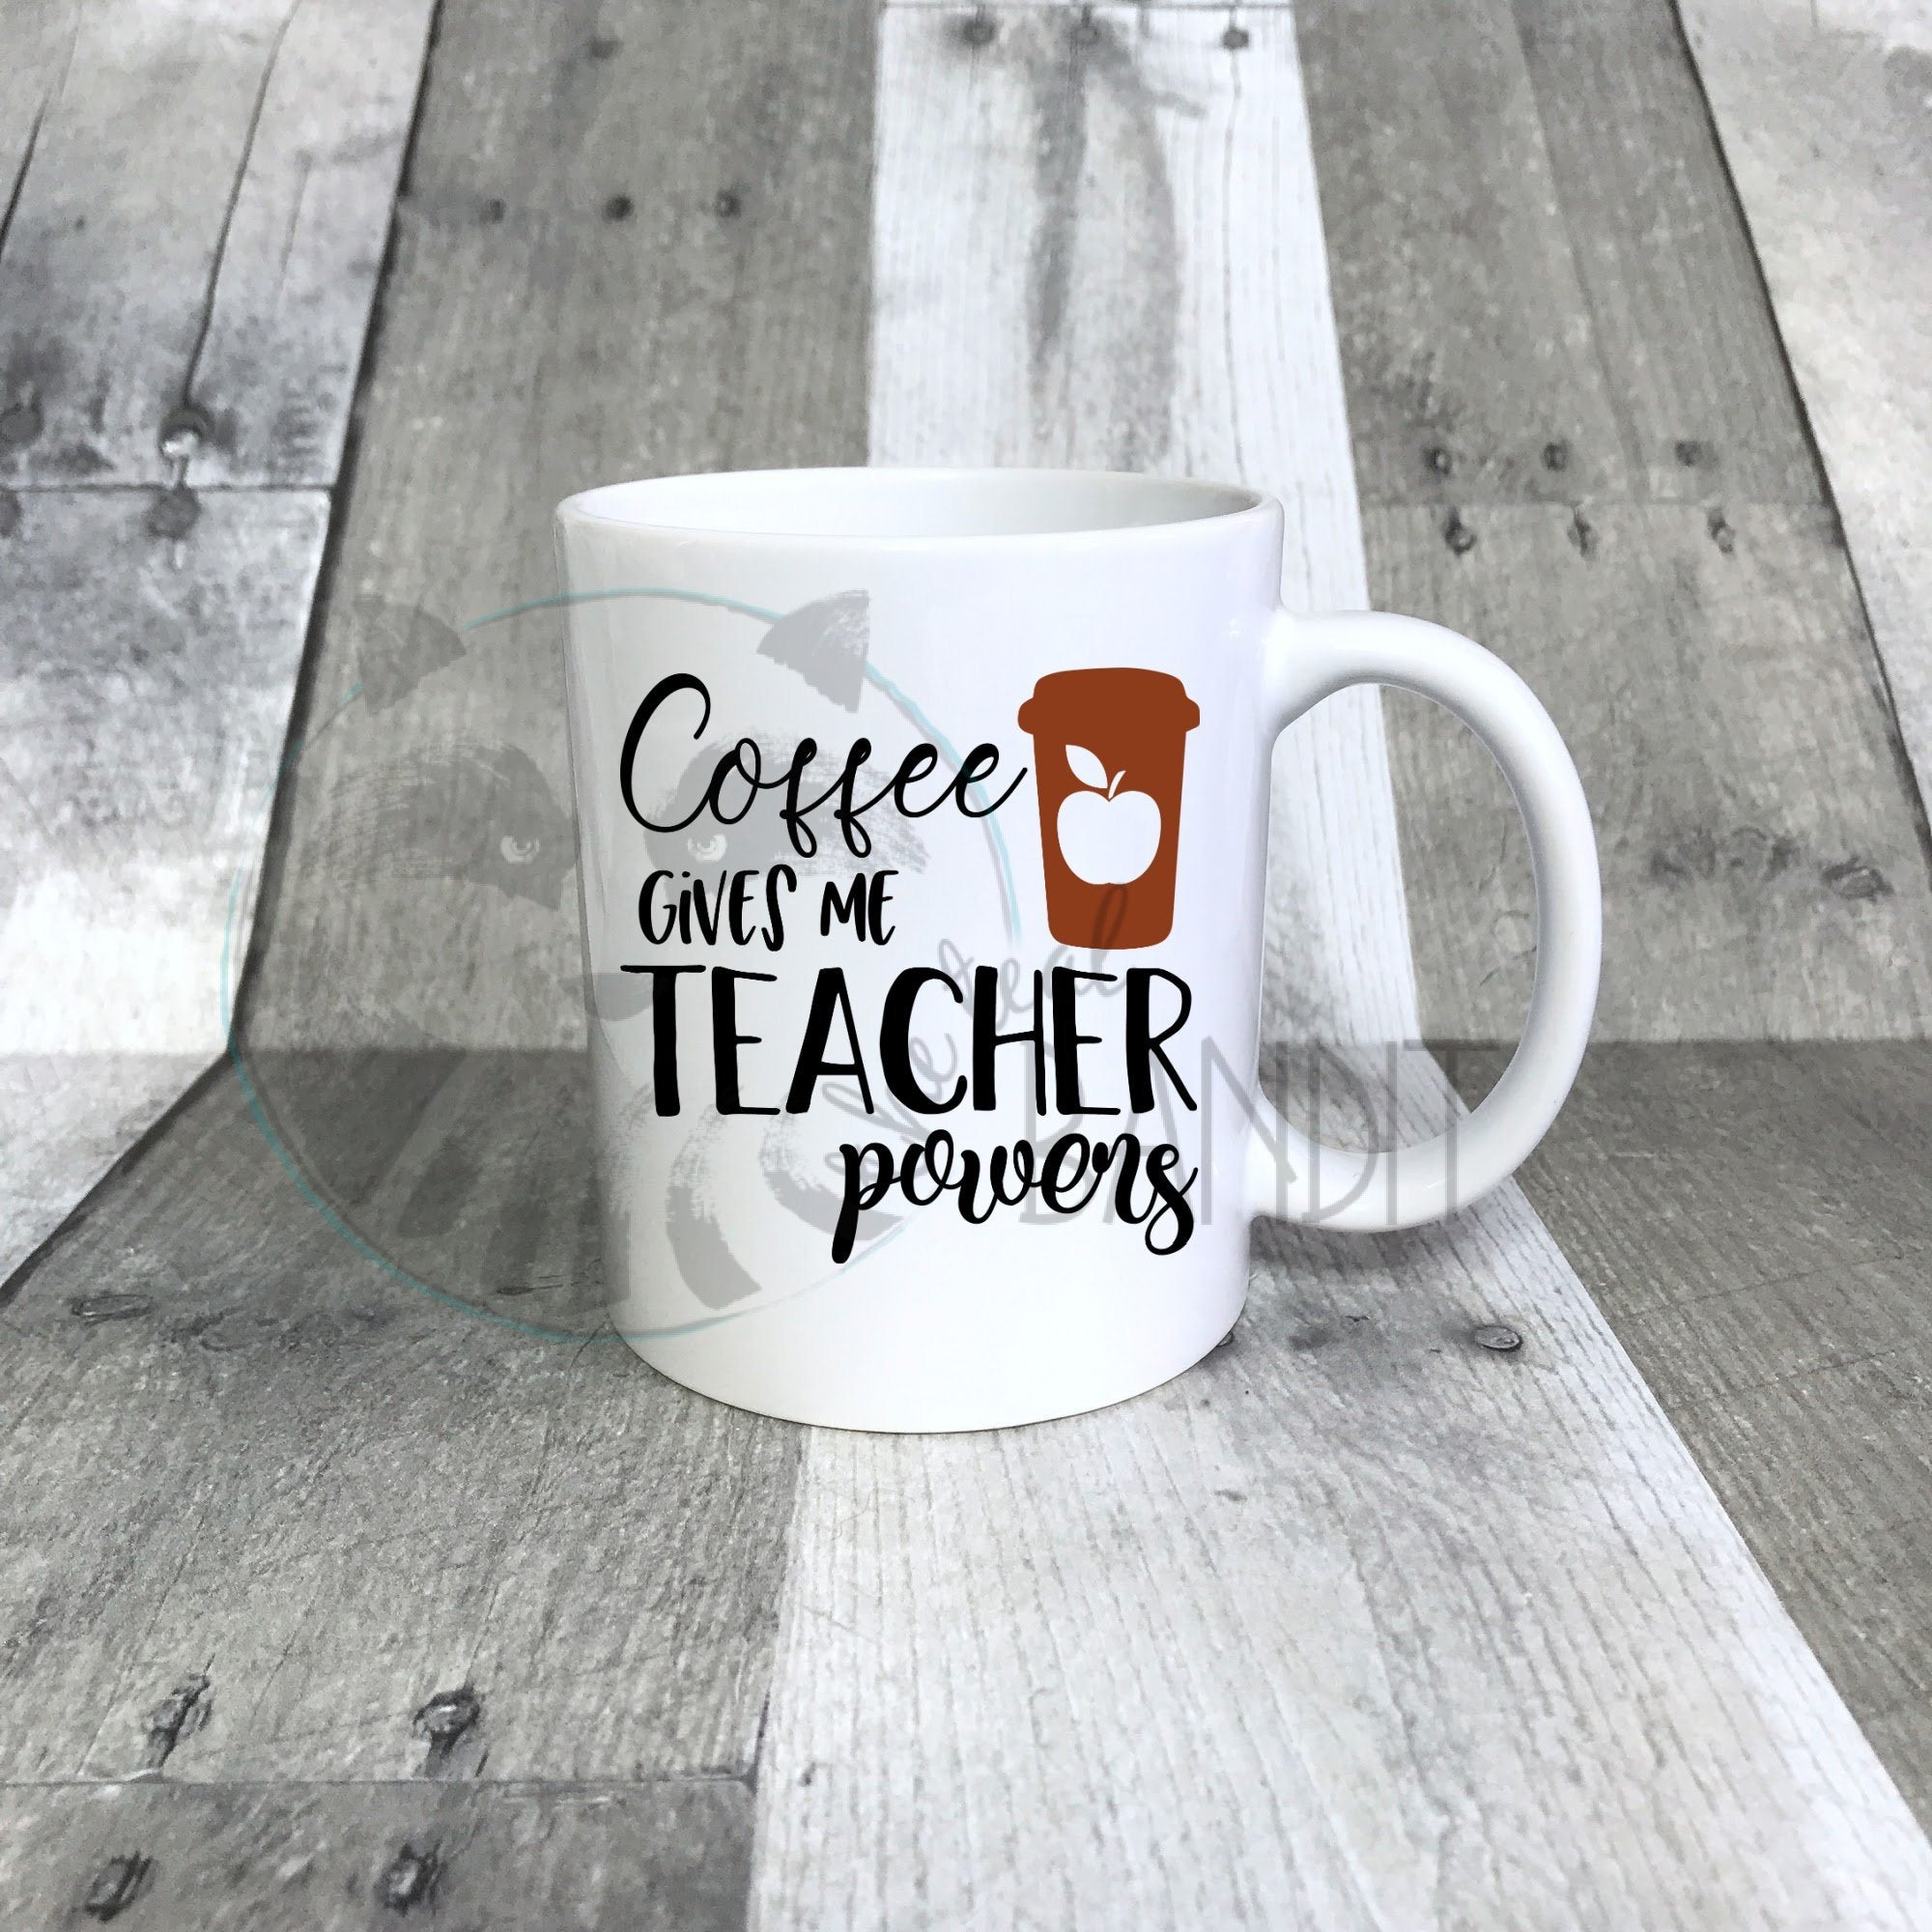 Coffee Gives Teaching Powers mug mug The Teal Bandit